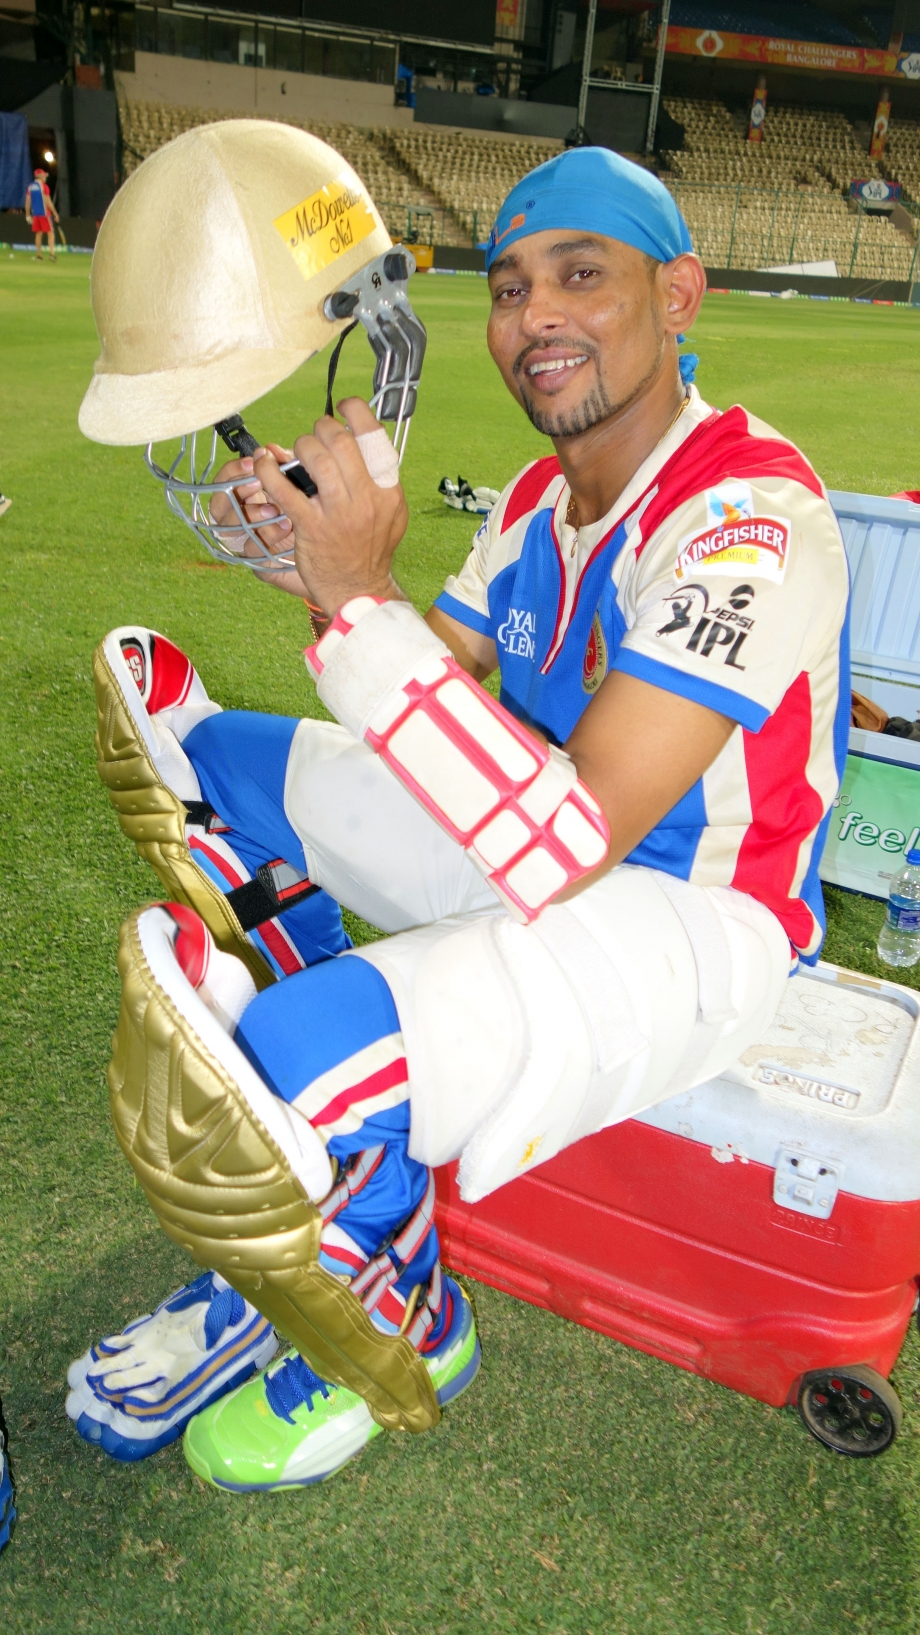 Dilshan gets ready to bat during RCB practise session at IPL